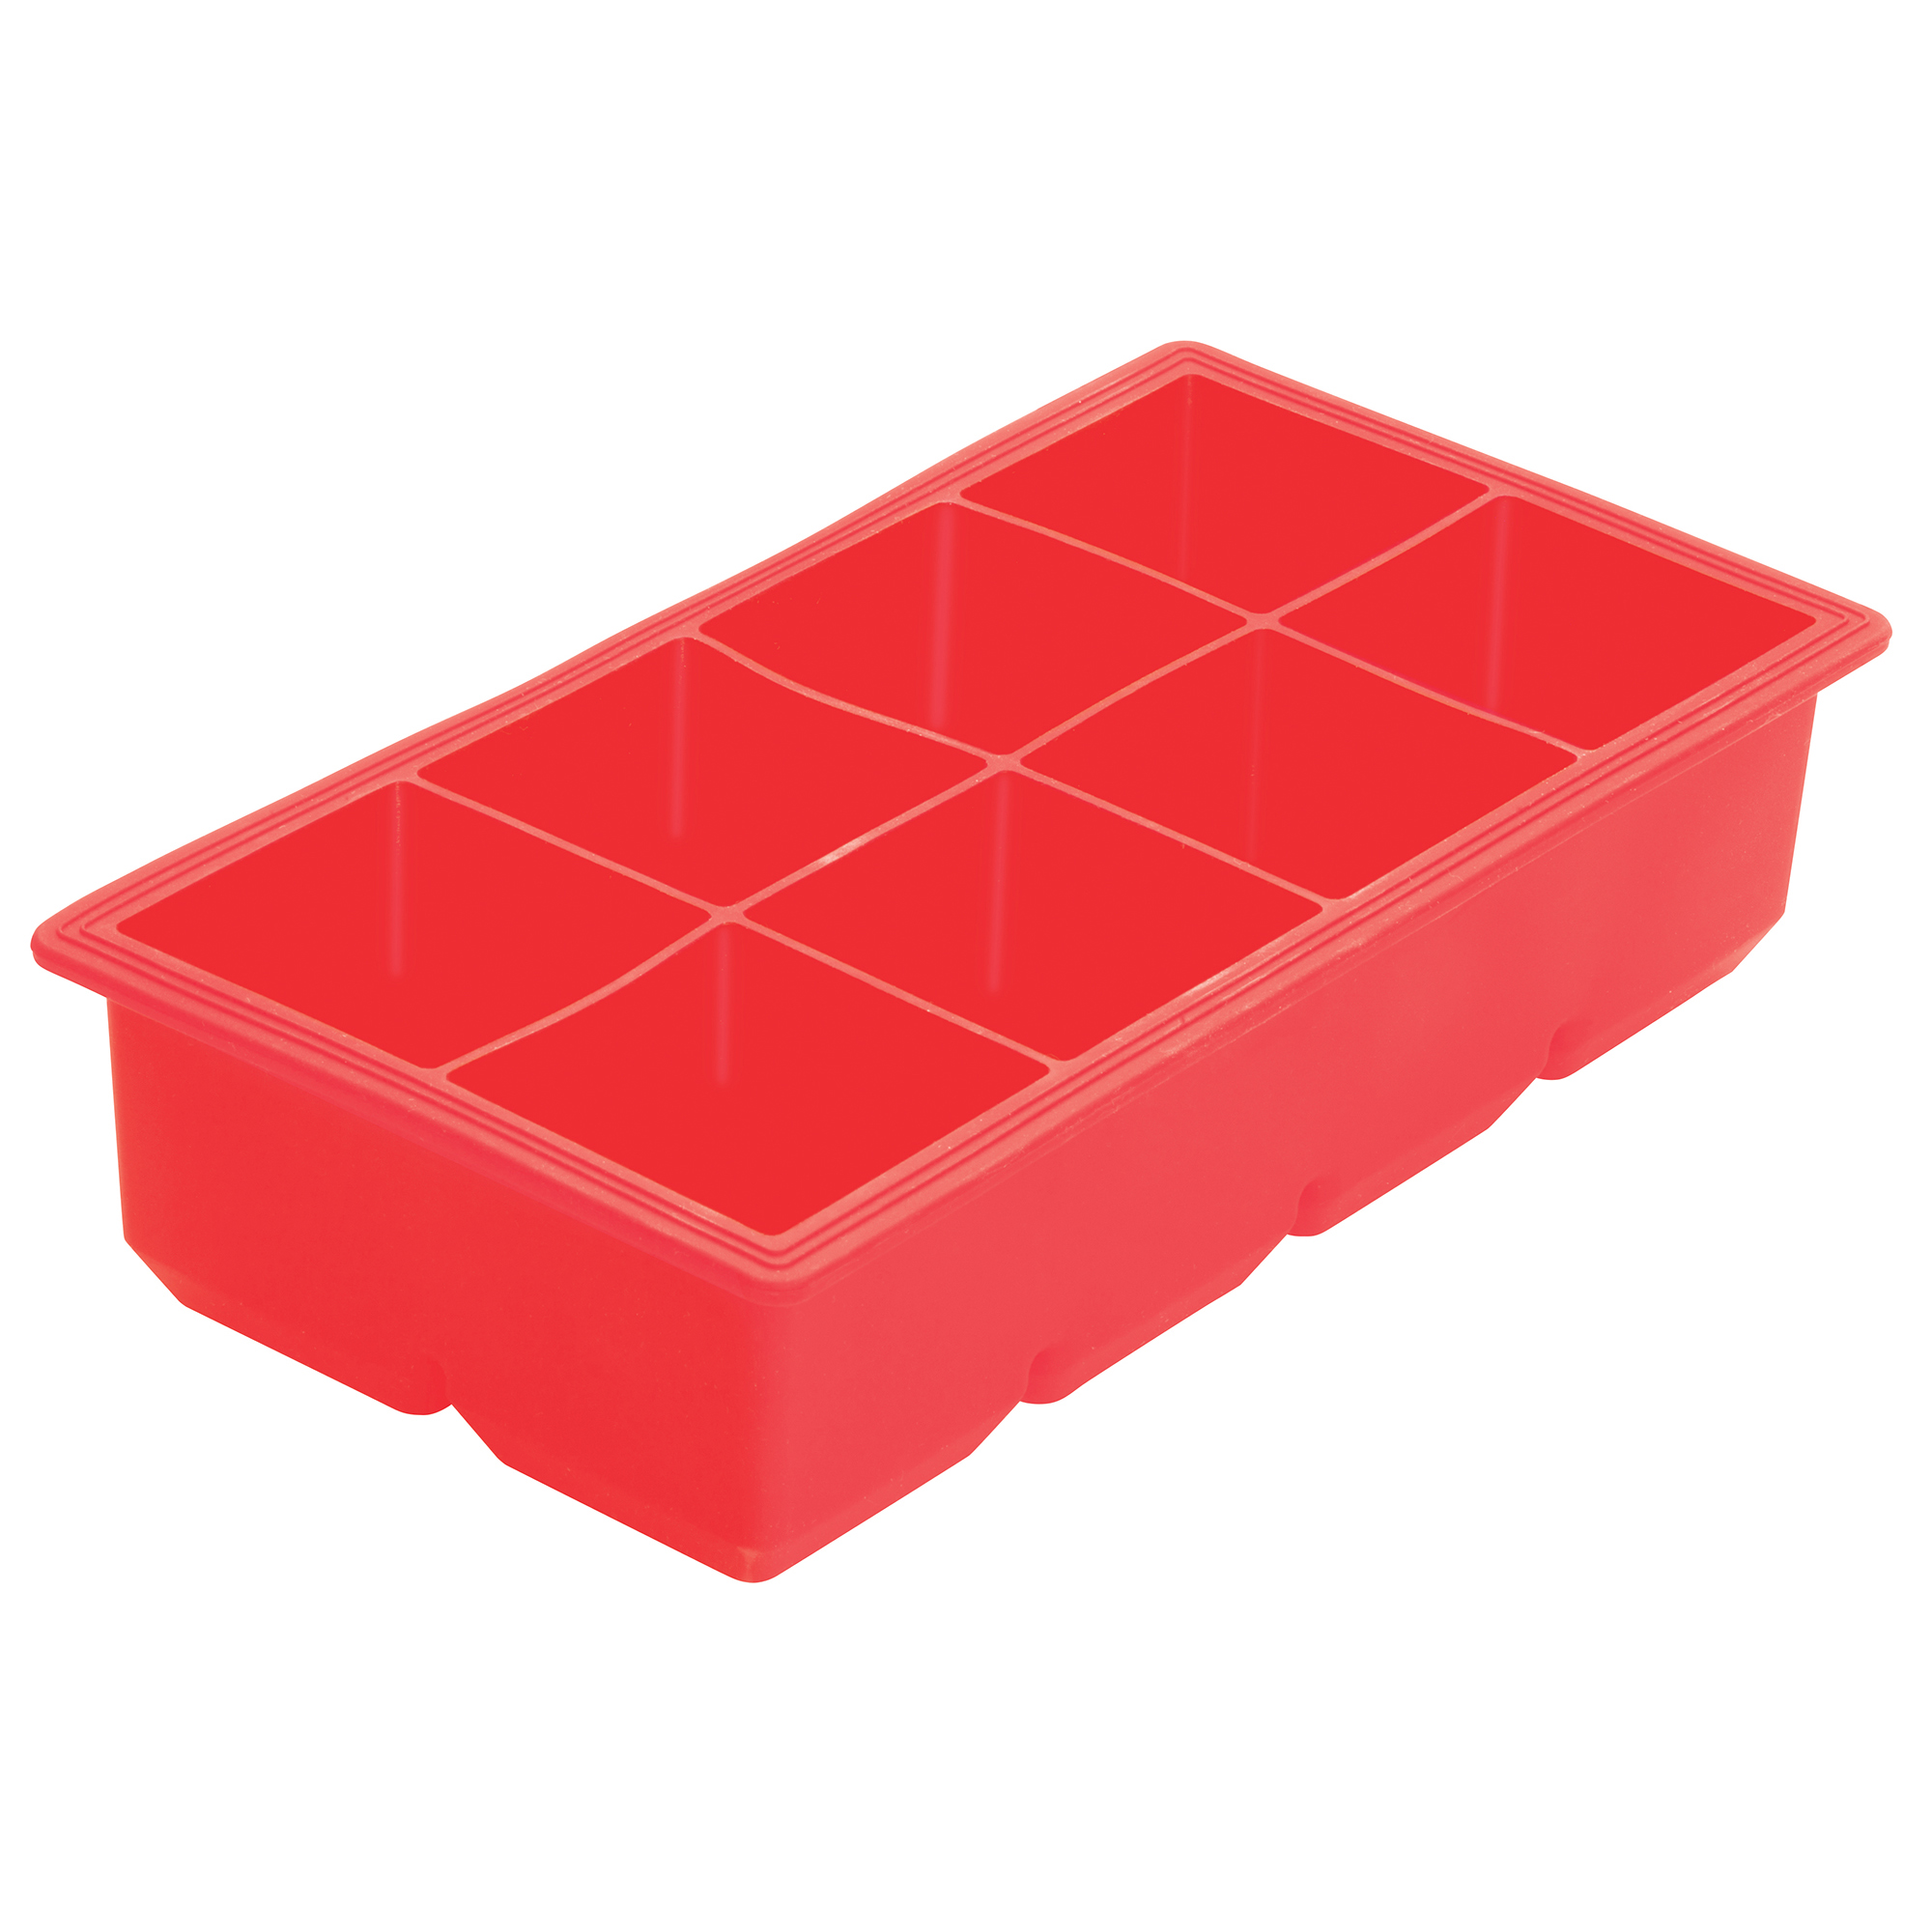 Winco ICCT-8R ice cube tray